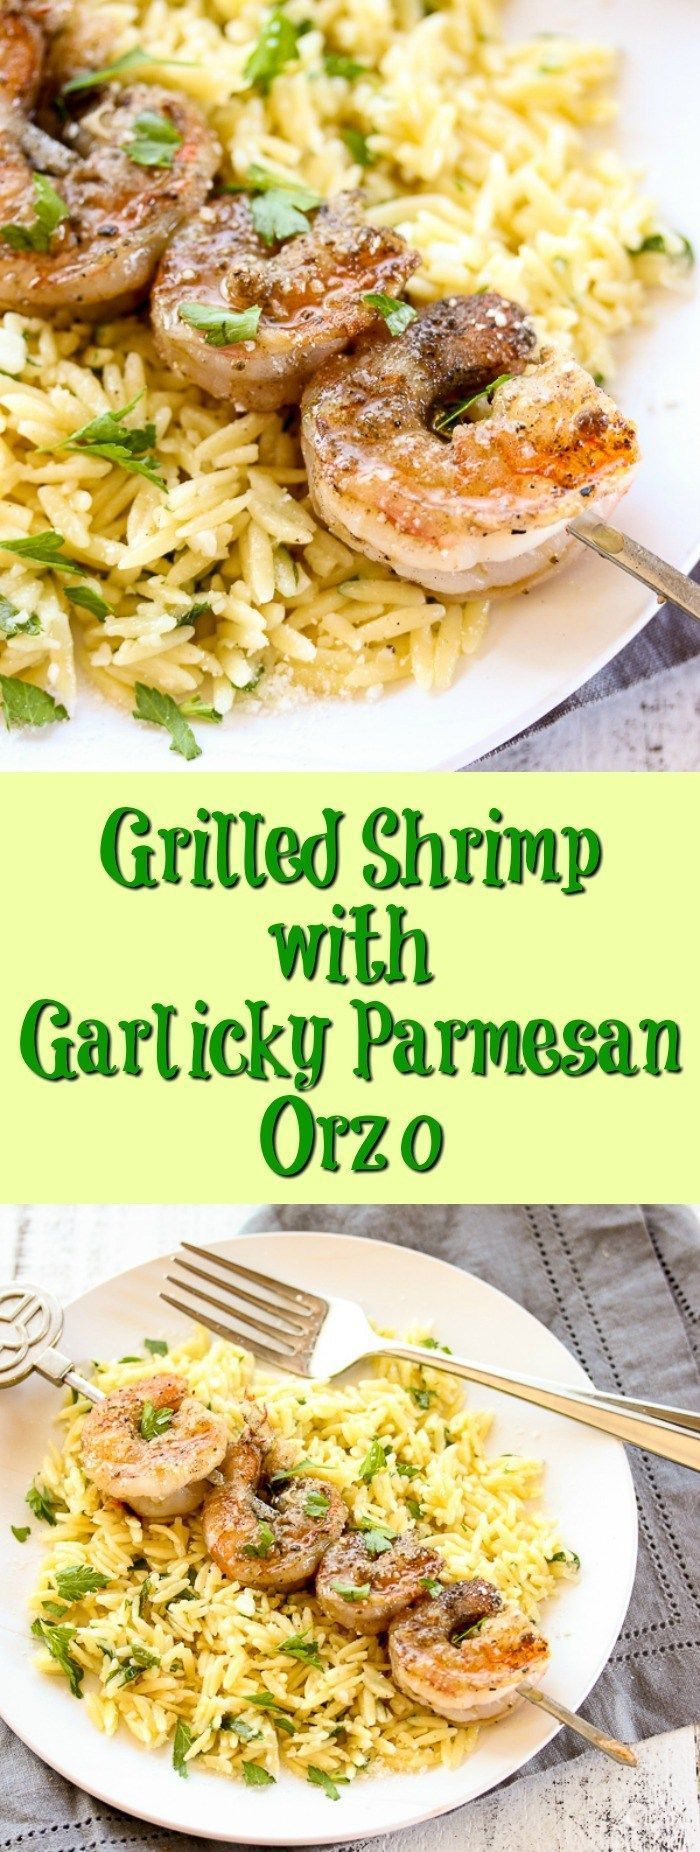 Grilled Shrimp with Garlicky Parmesan Orzo - Lisa's Dinnertime Dish